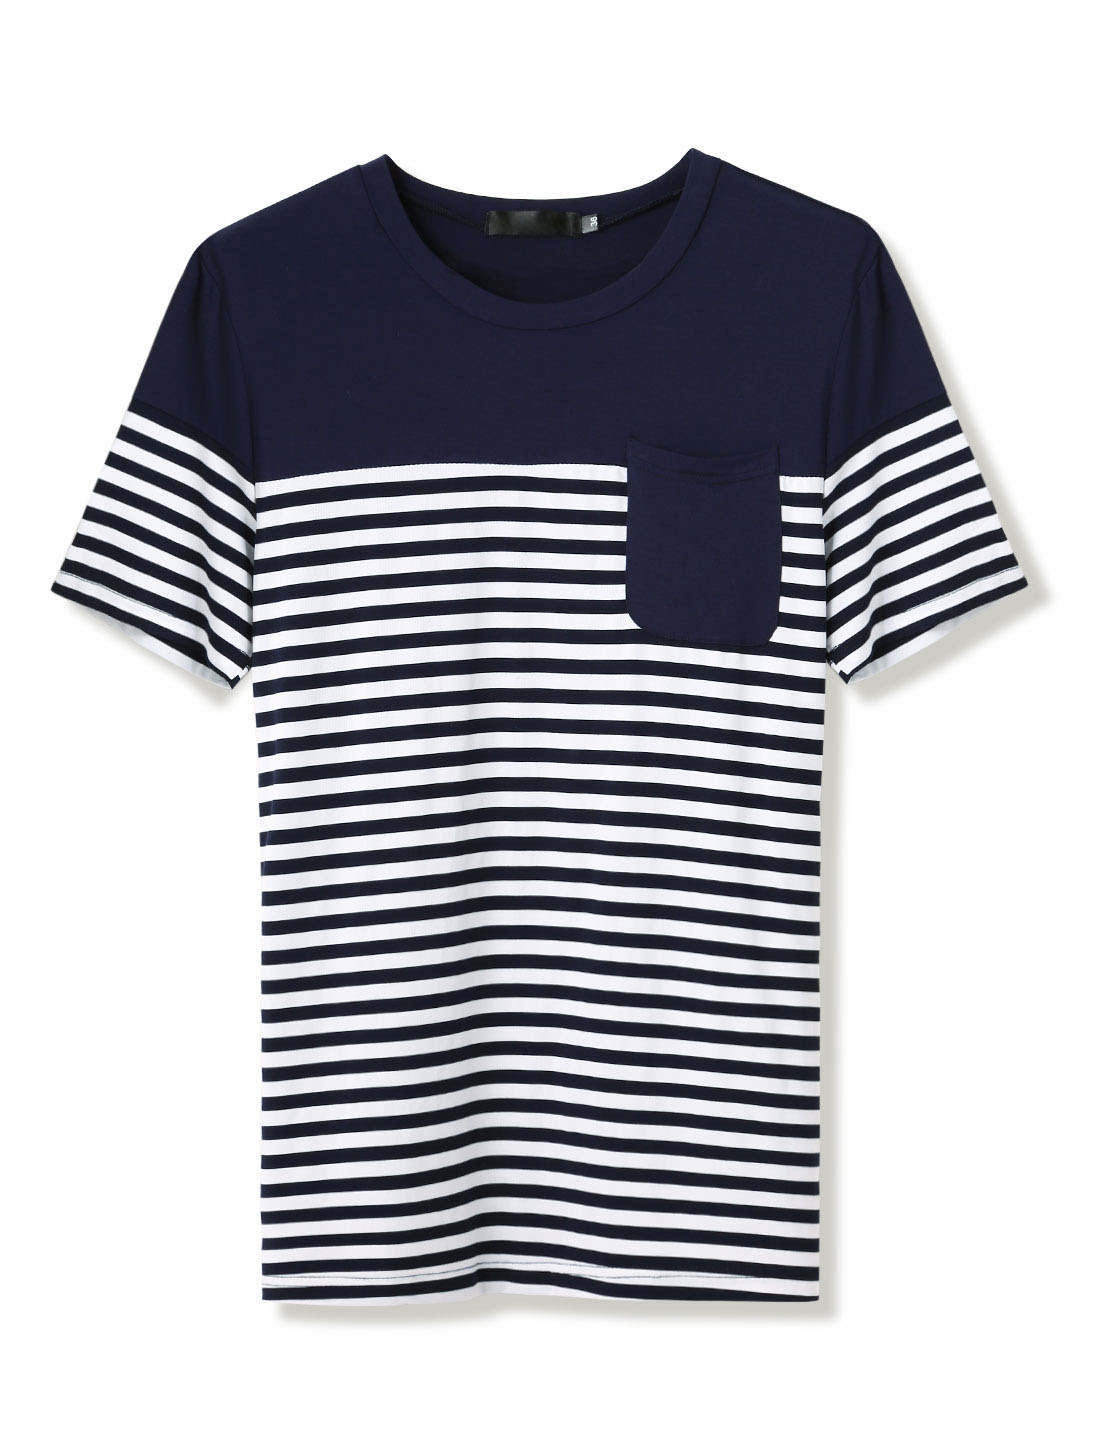 Men Short Sleeve Patch Pocket Slim Fit Striped Tee Navy Blue M